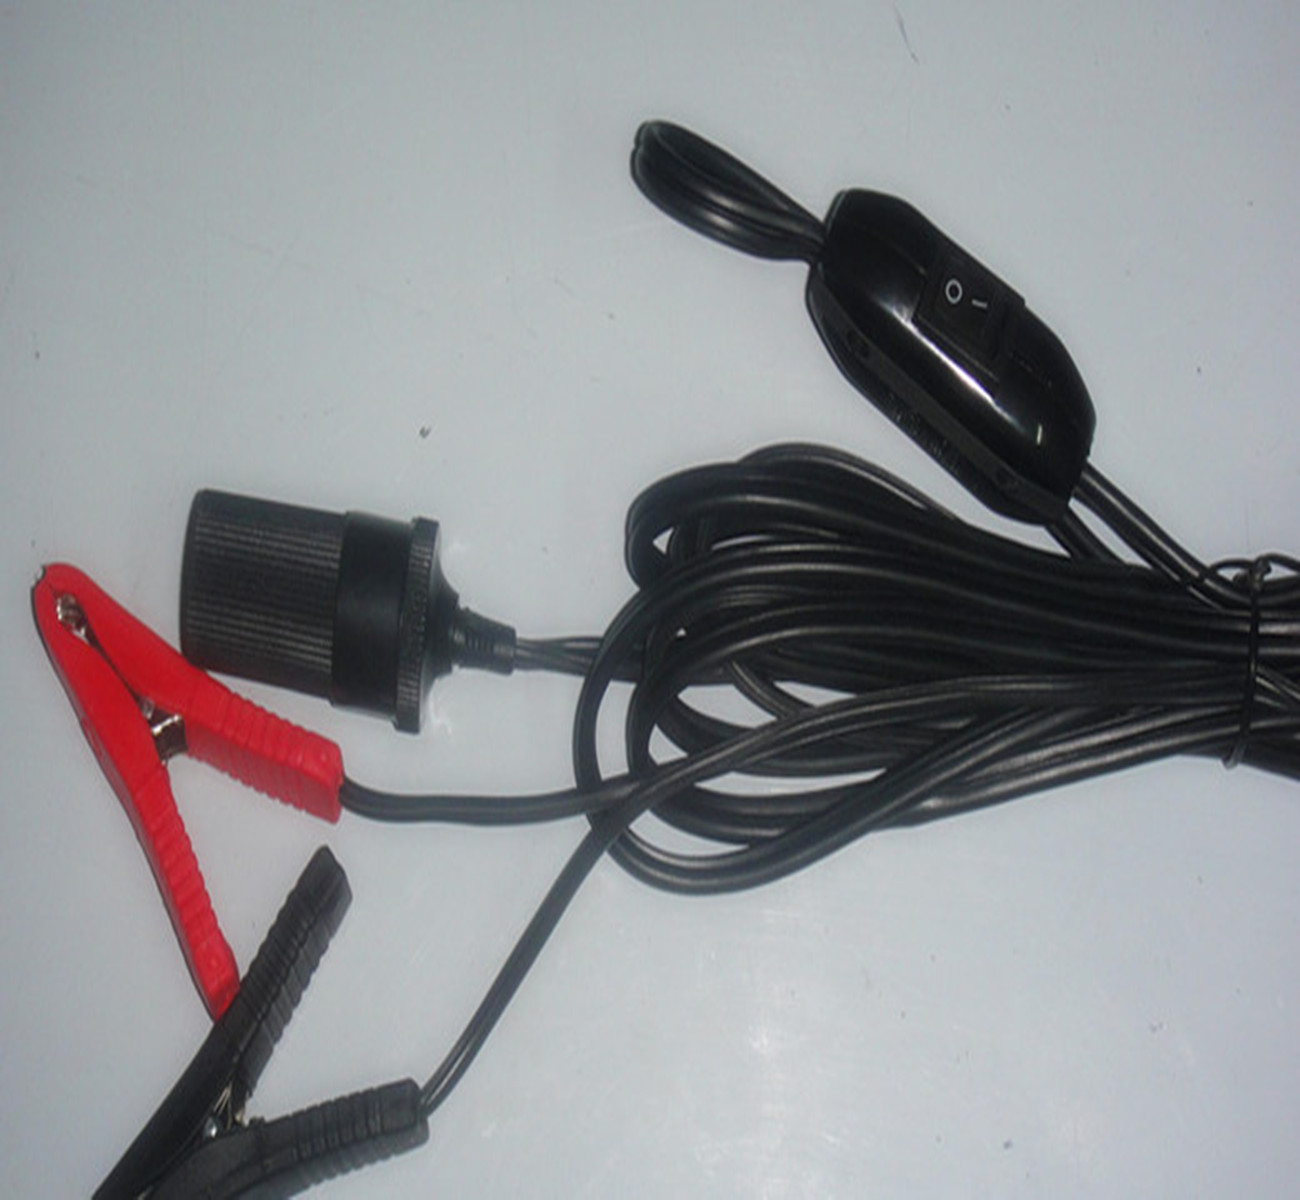 Car Battery Cable Extension : Alligator clips turn the car cigarette lighter female m